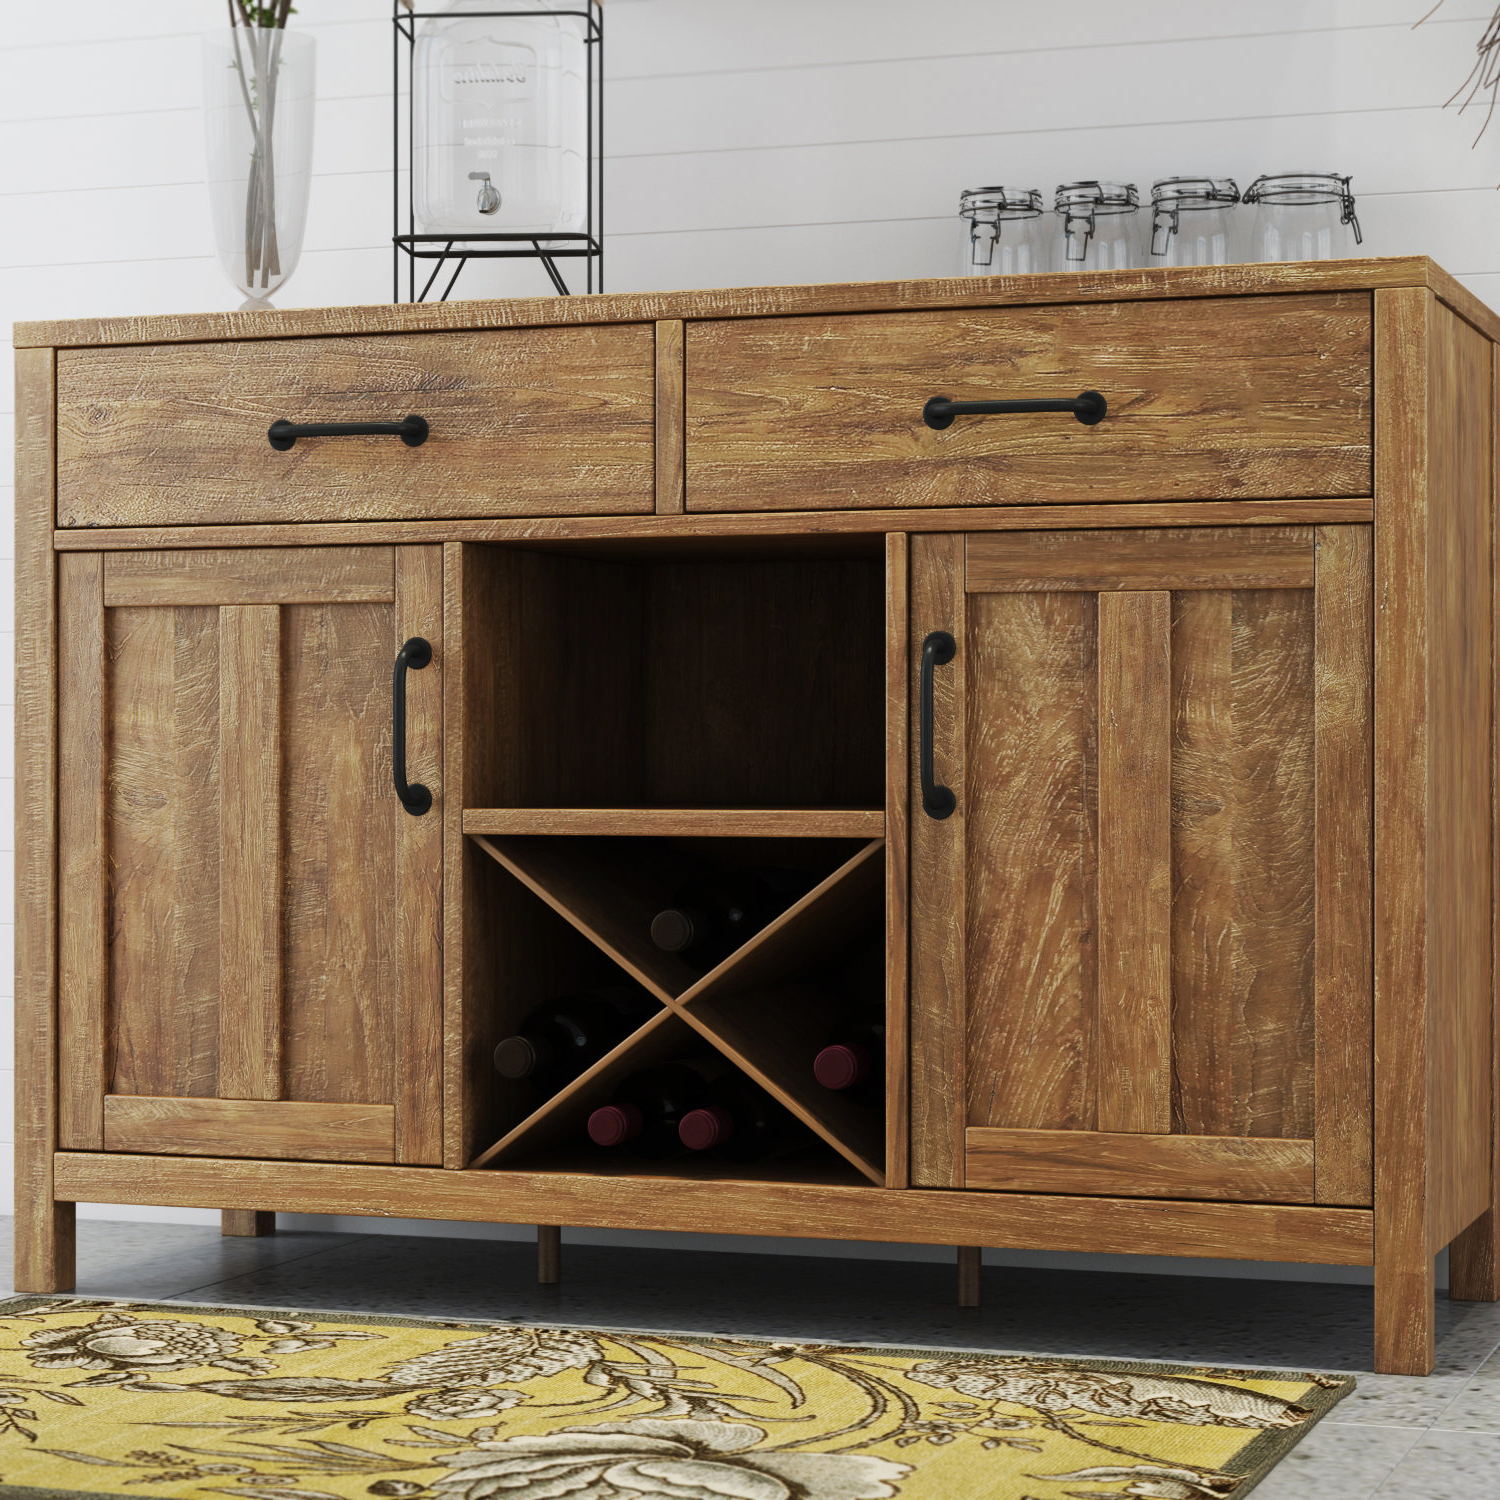 Avenal Sideboard & Reviews | Joss & Main For Fortville Sideboards (View 17 of 20)